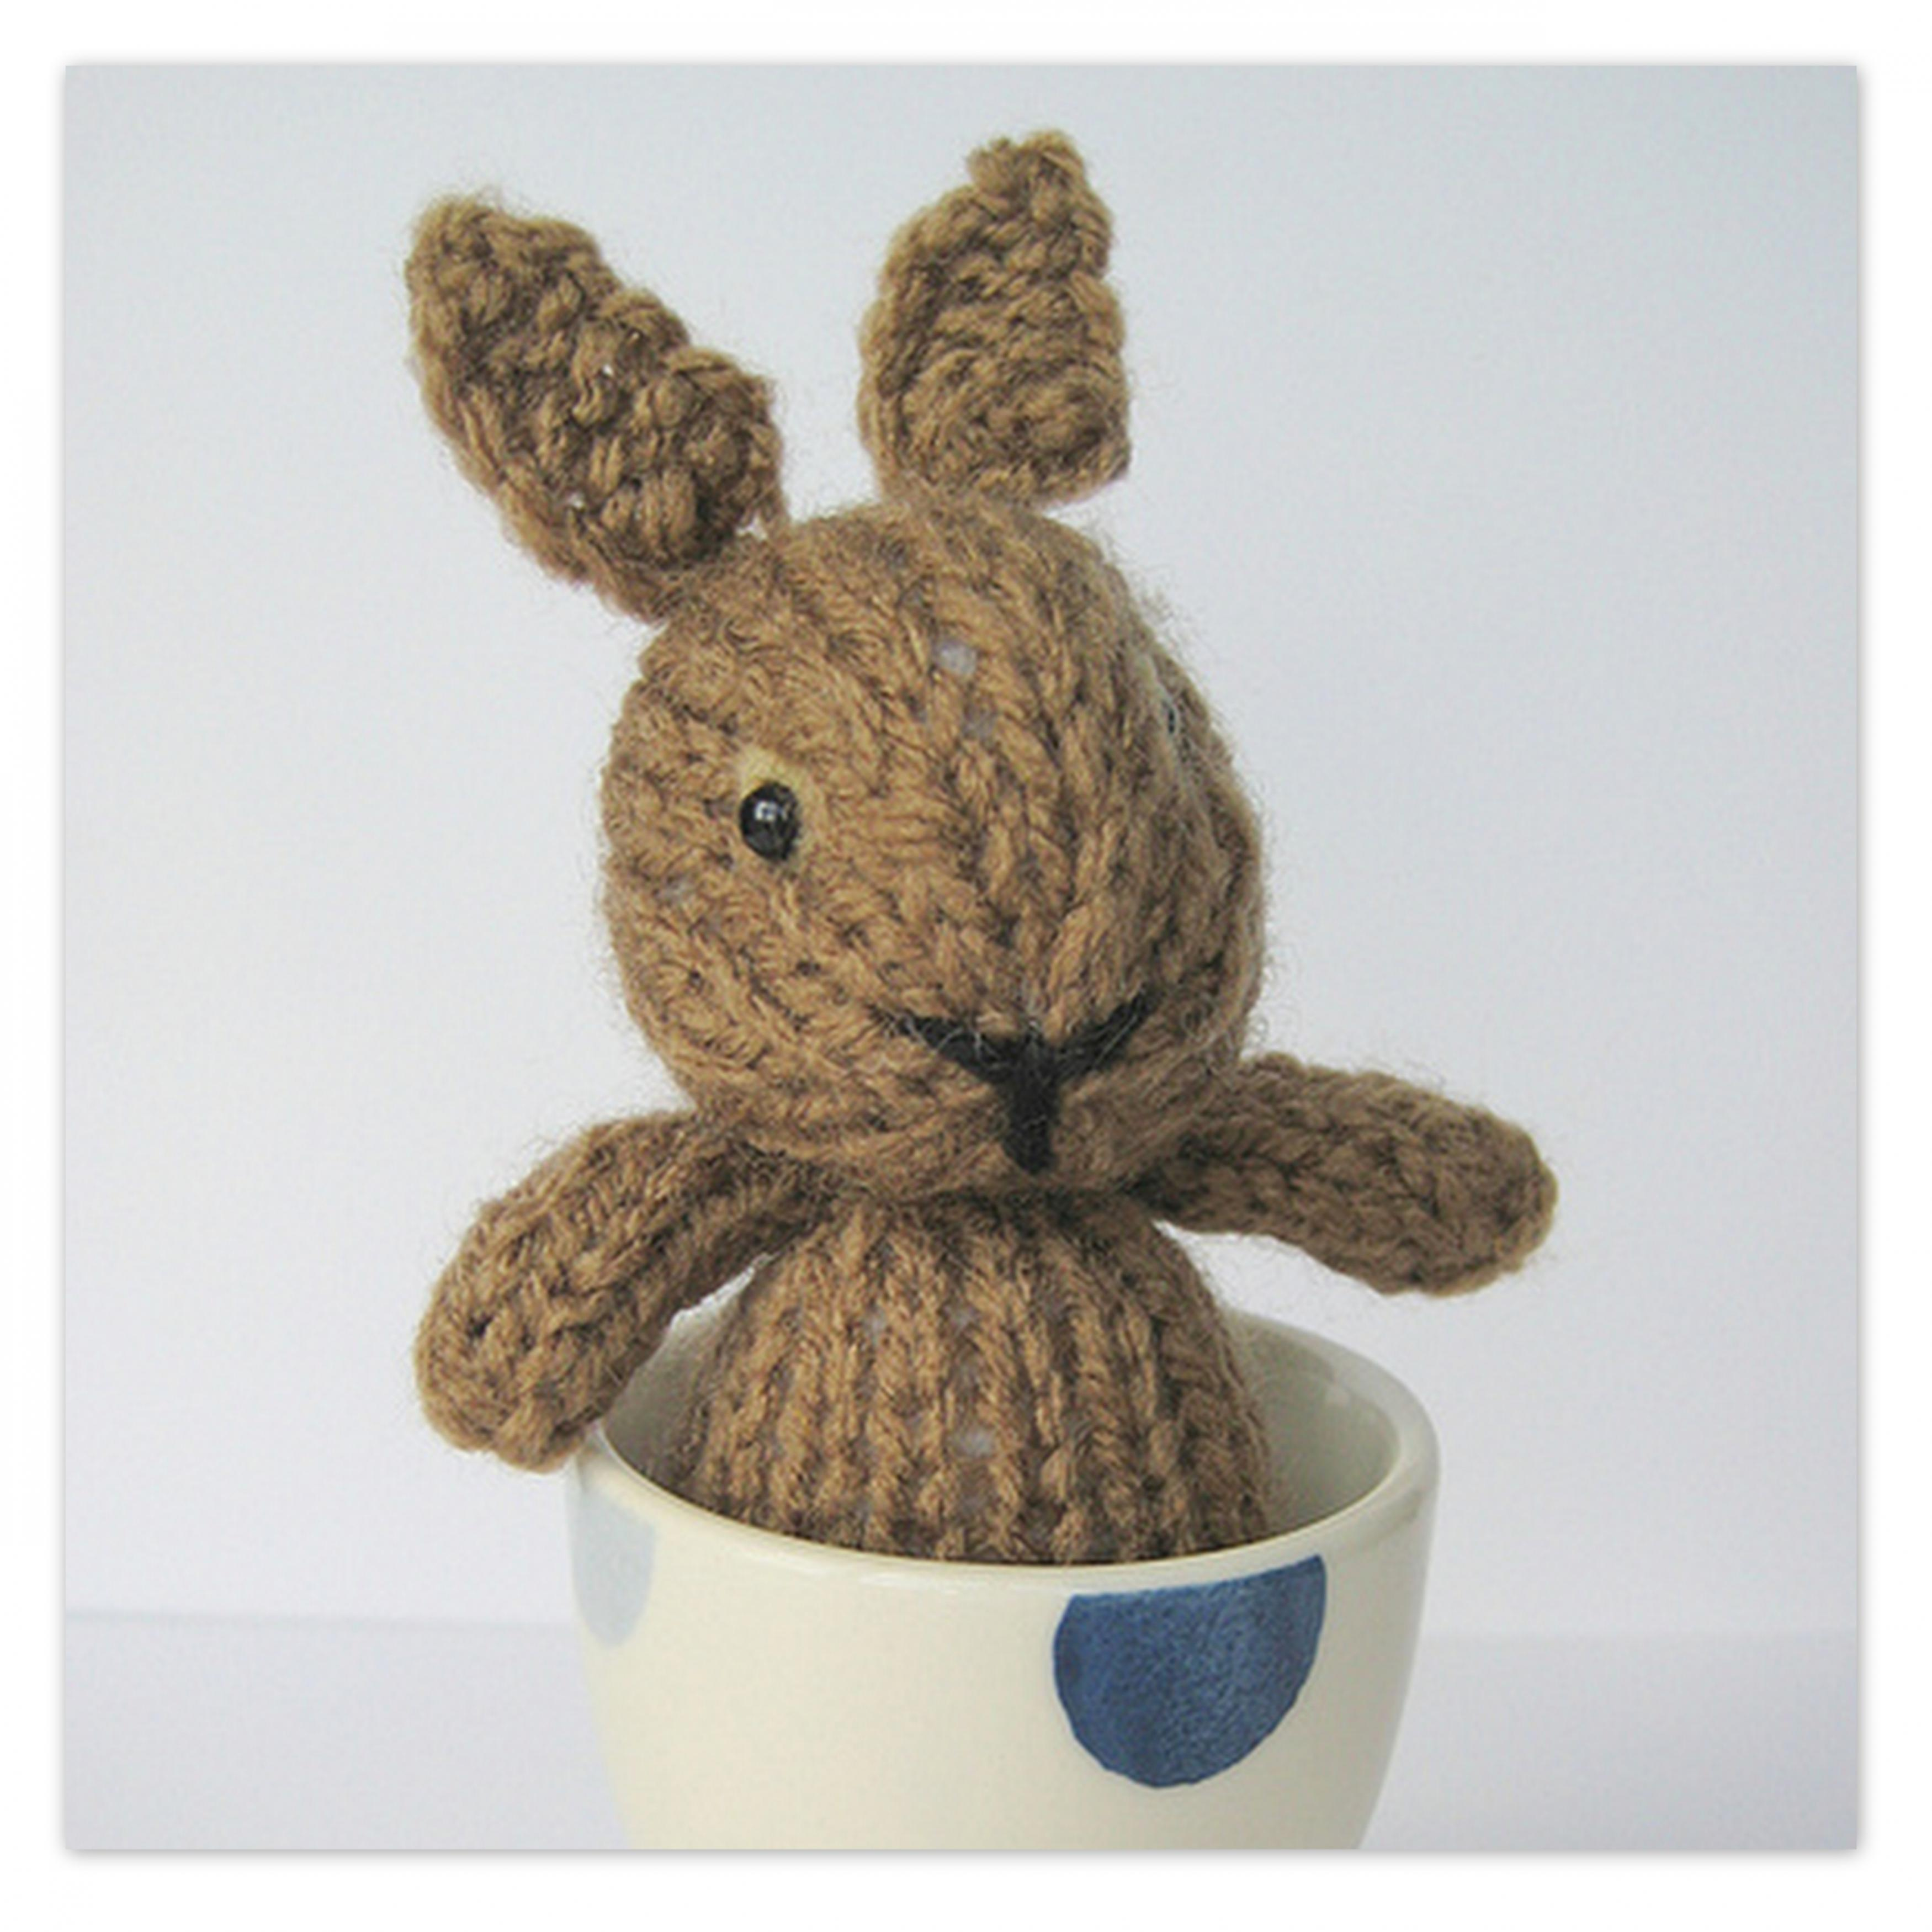 Knitting Patterns For Toy Rabbits : Egg Cup Bunny Toy Knitting Patterns on Luulla